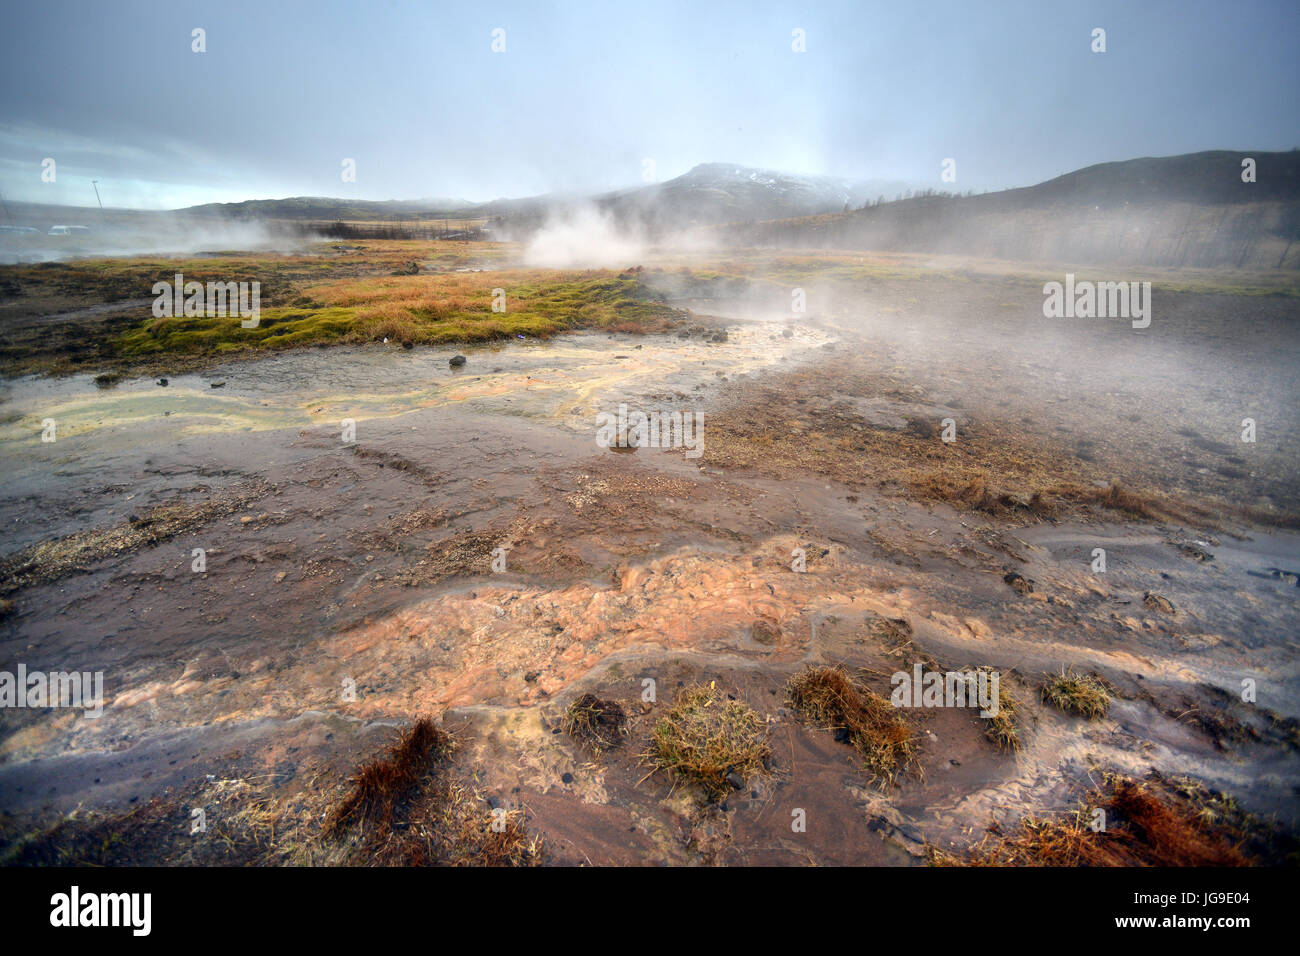 Hot springs, Iceland - Stock Image